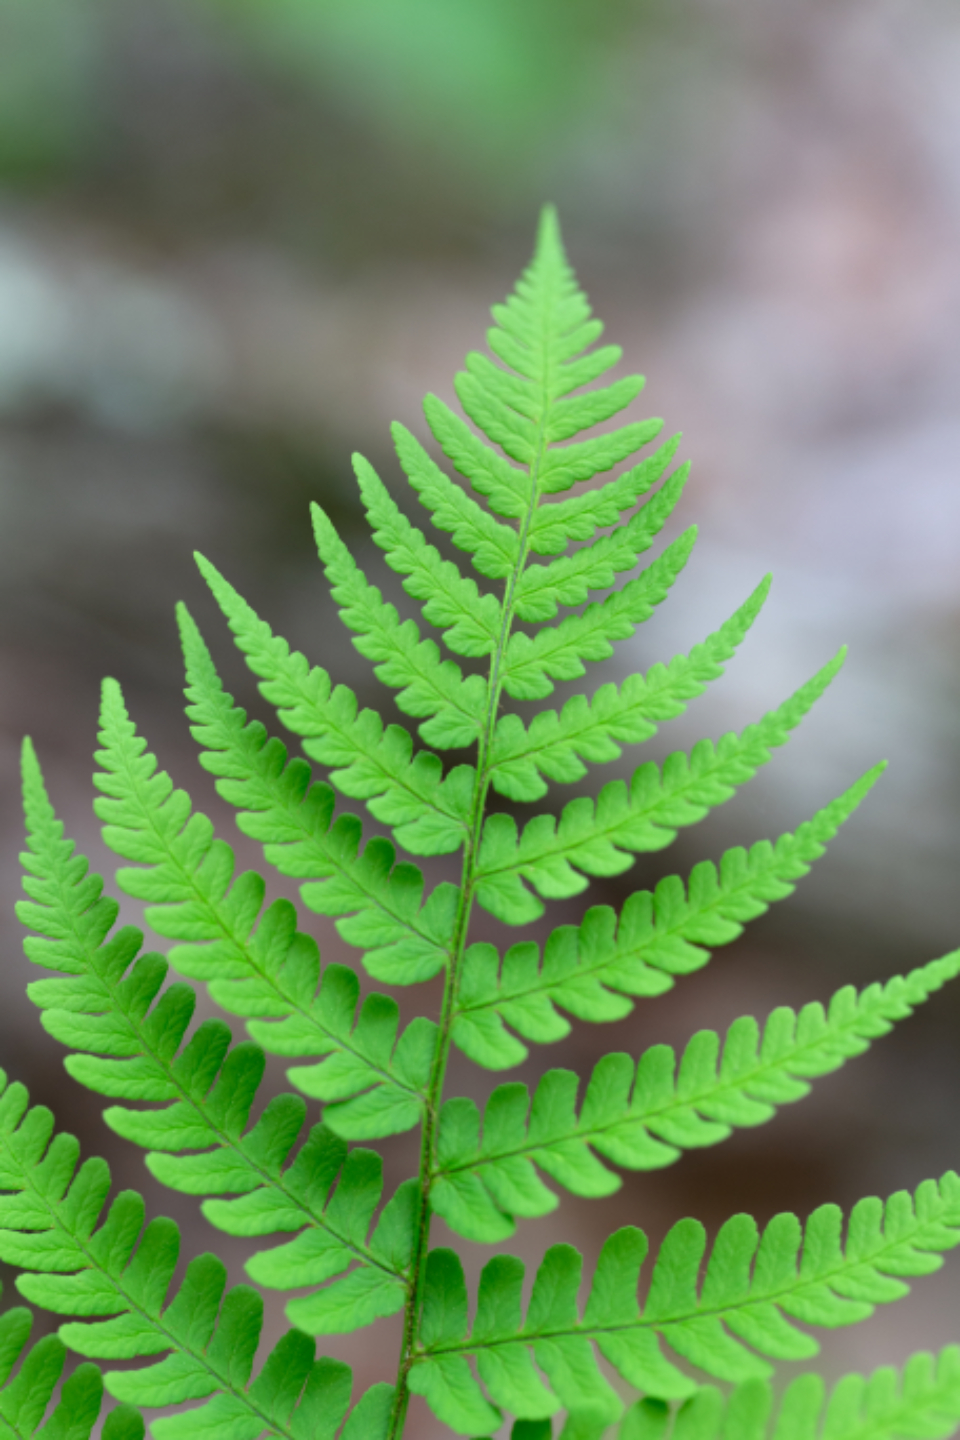 fern green background plant botany symmetry closeup detail leaf leaves natural bright woods forest ecology